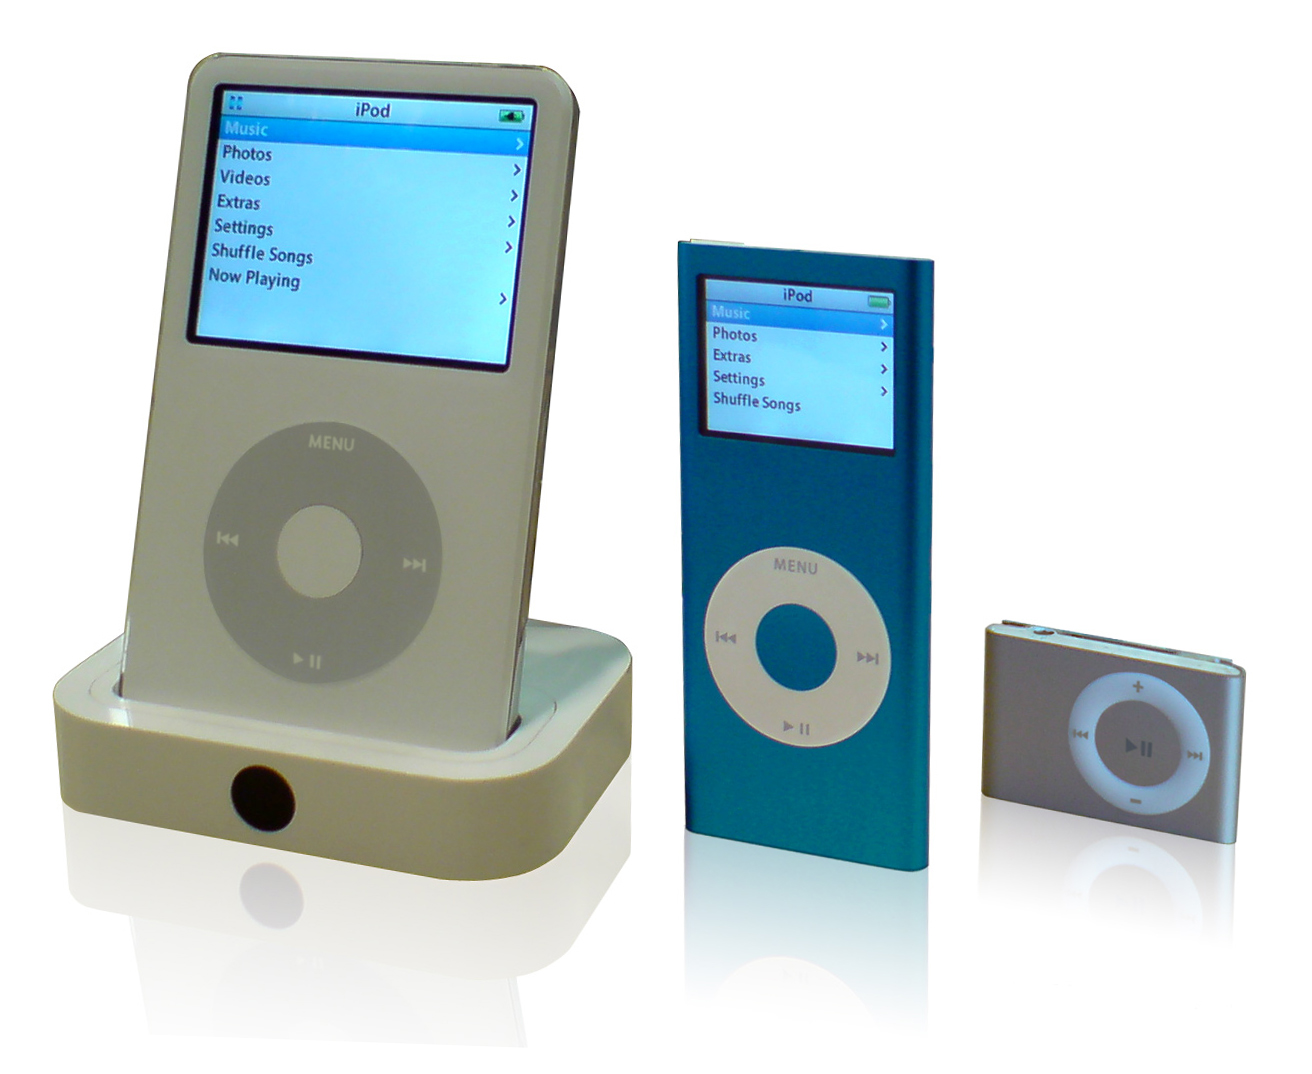 ipod mp3 player: